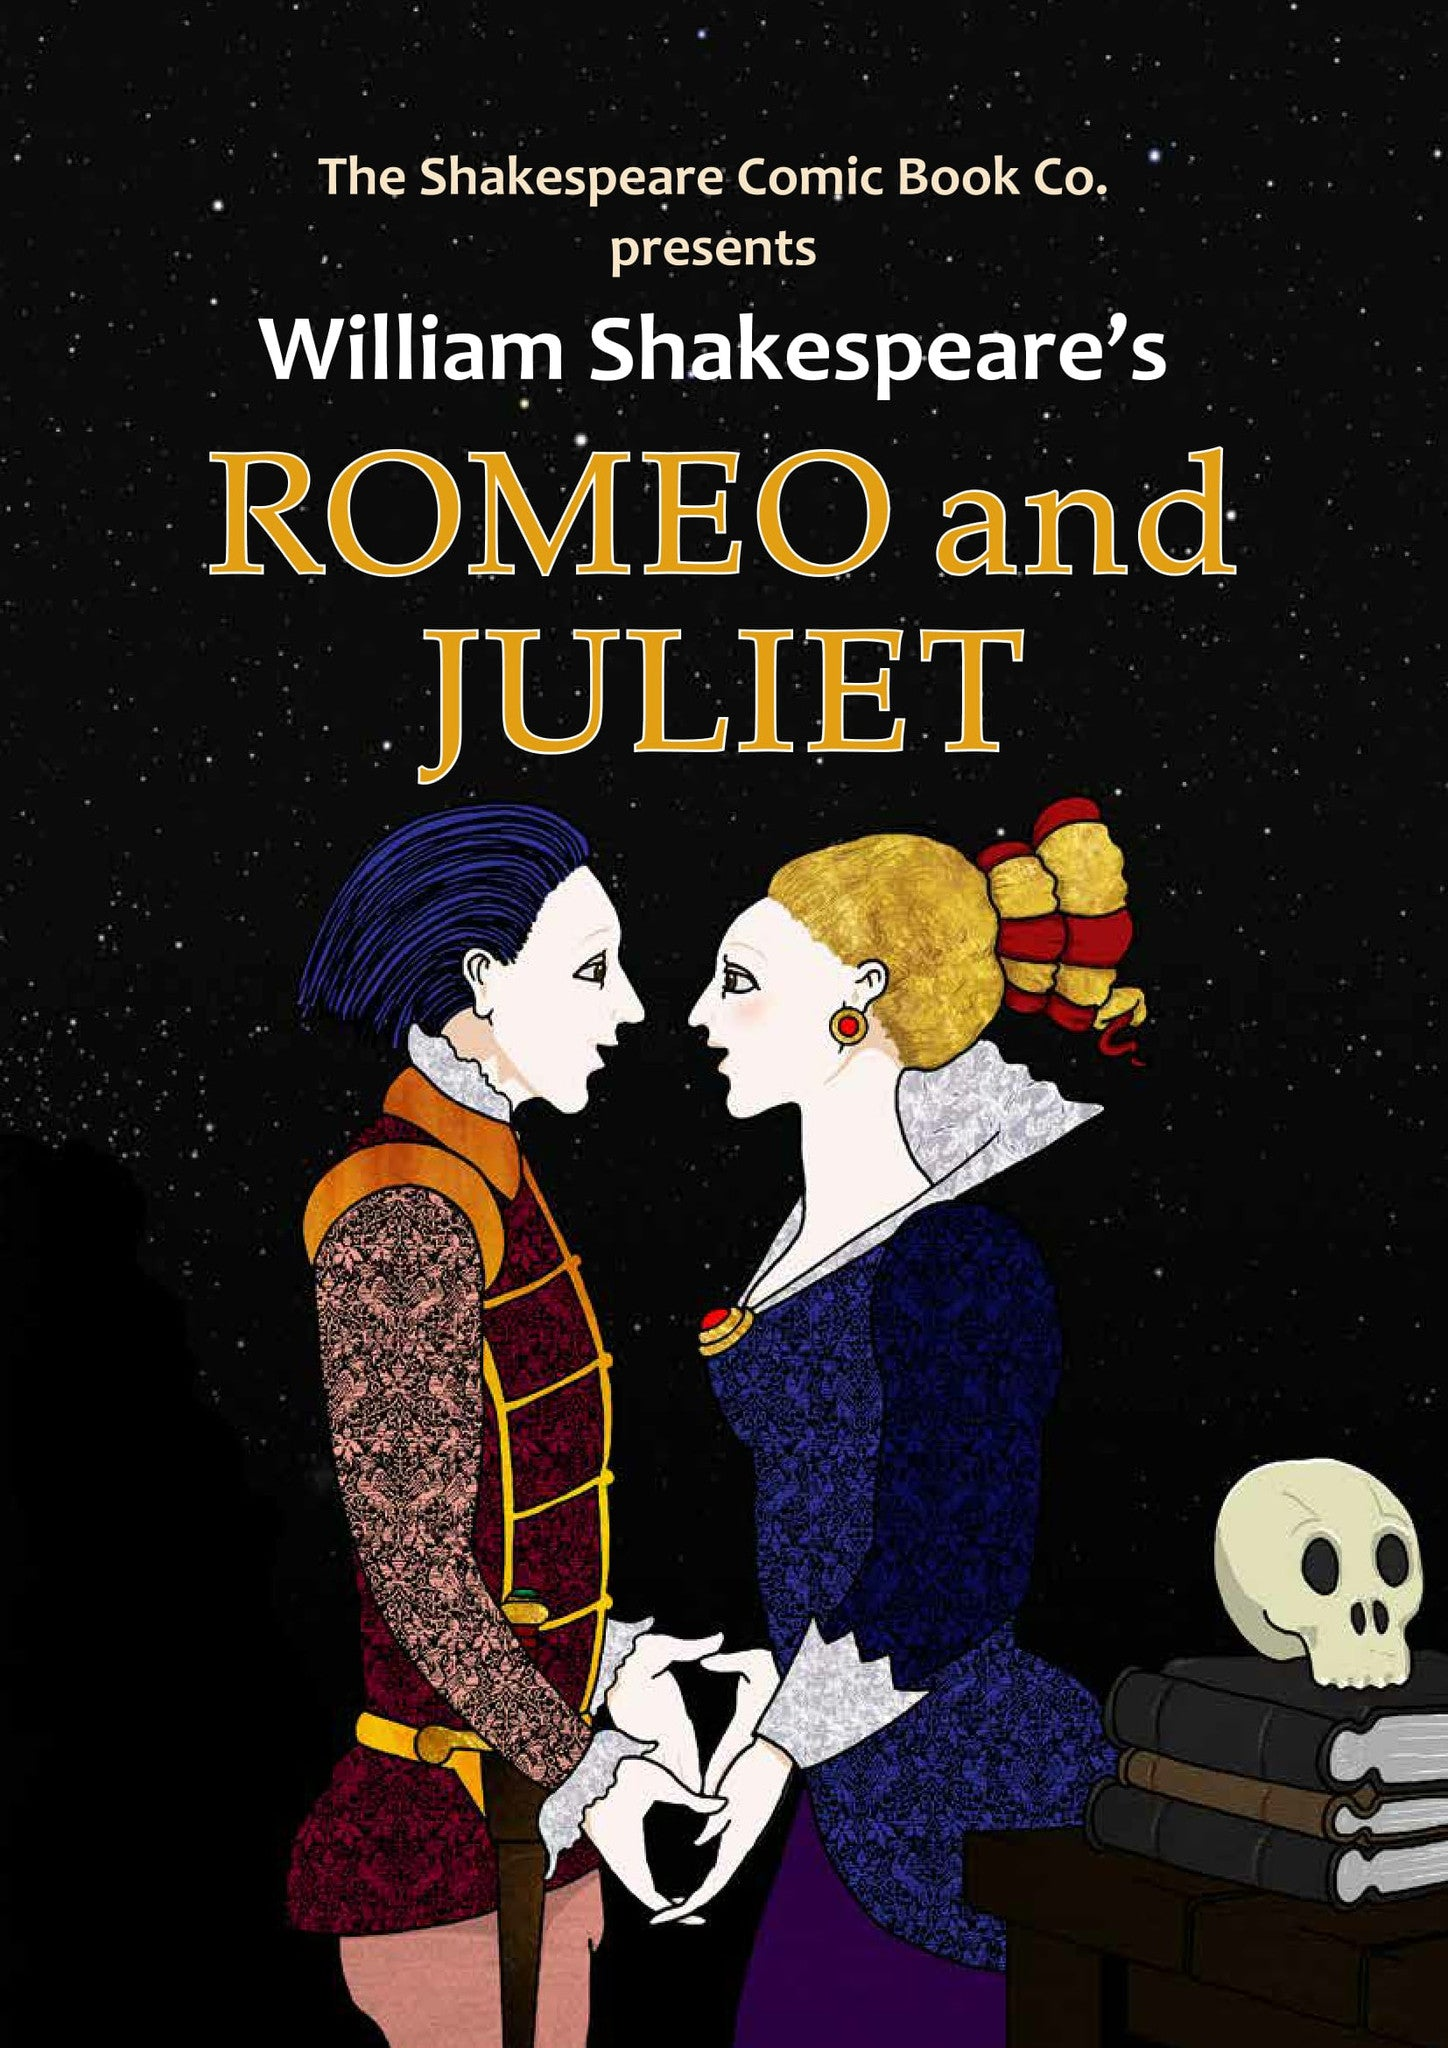 """an analysis of the downfall of juliet in william shakespeares romeo and juliet Introduction to literature c """"theme analysis of film 'romeo and juliet' 1996 by william shakespeare"""" by: johara indrawati / 125110500111044 introduction william shakespeare was born in stratford-upon-avon, warwickshire, england, at 26 april 1564."""